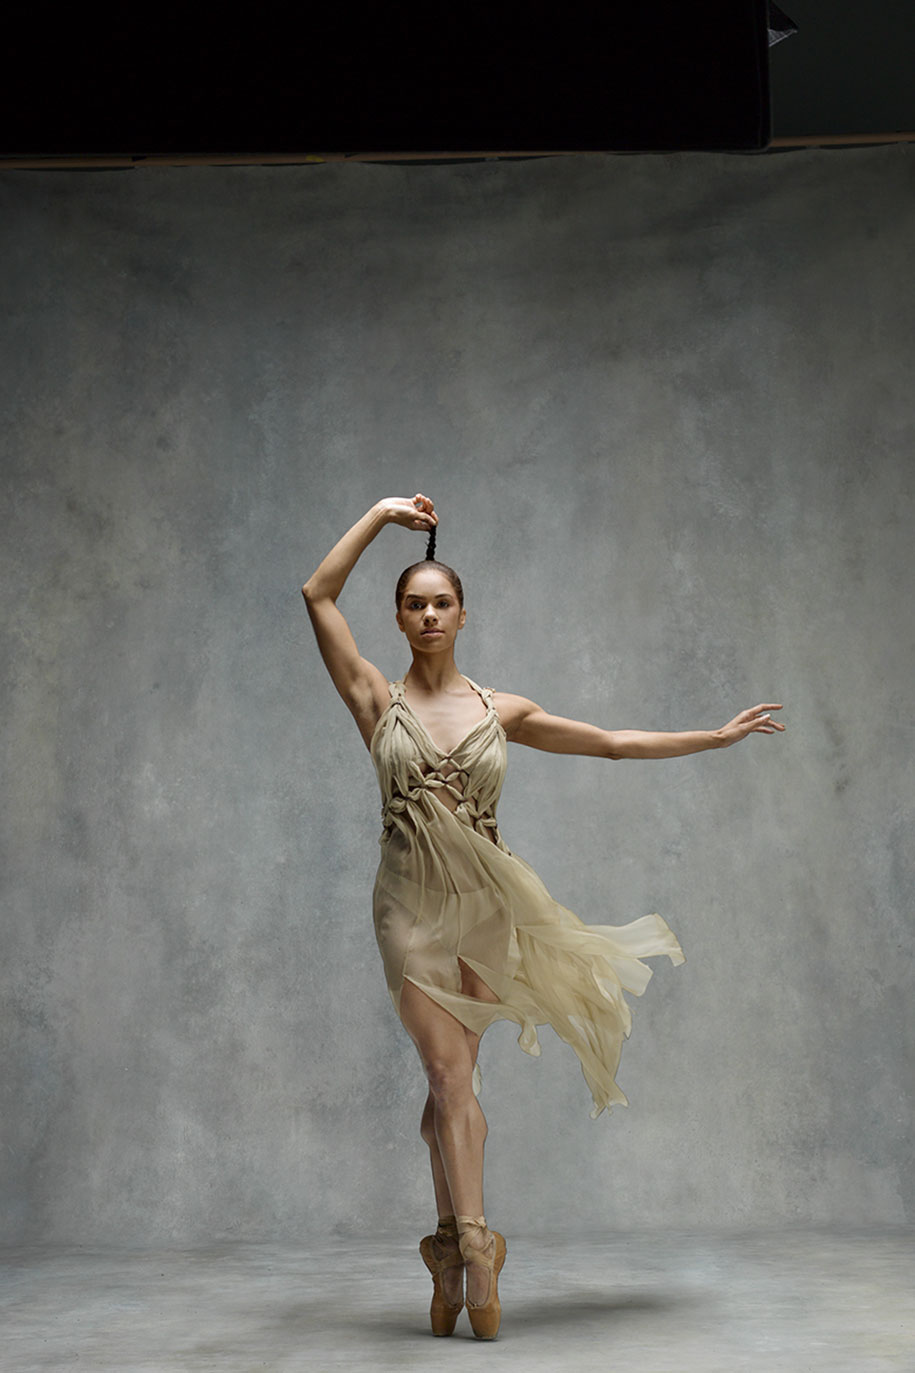 edgar-degas-ballet-dancer-painting-photoshoot-misty-copeland-harpers-bazaar-7